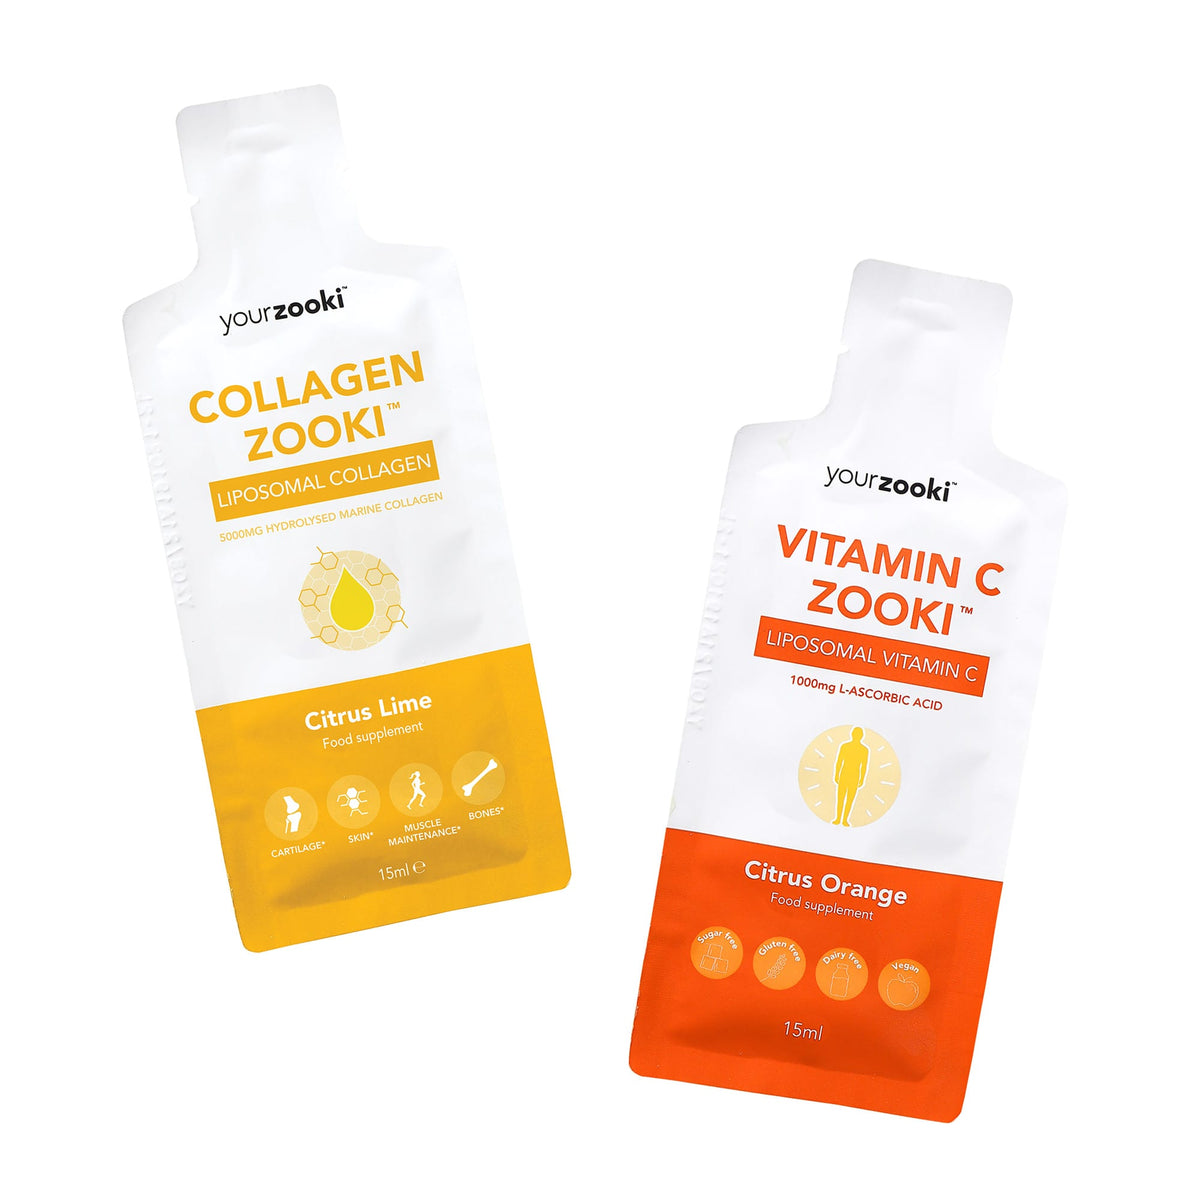 Vitamin C + Collagen Zooki Monthly Bundle